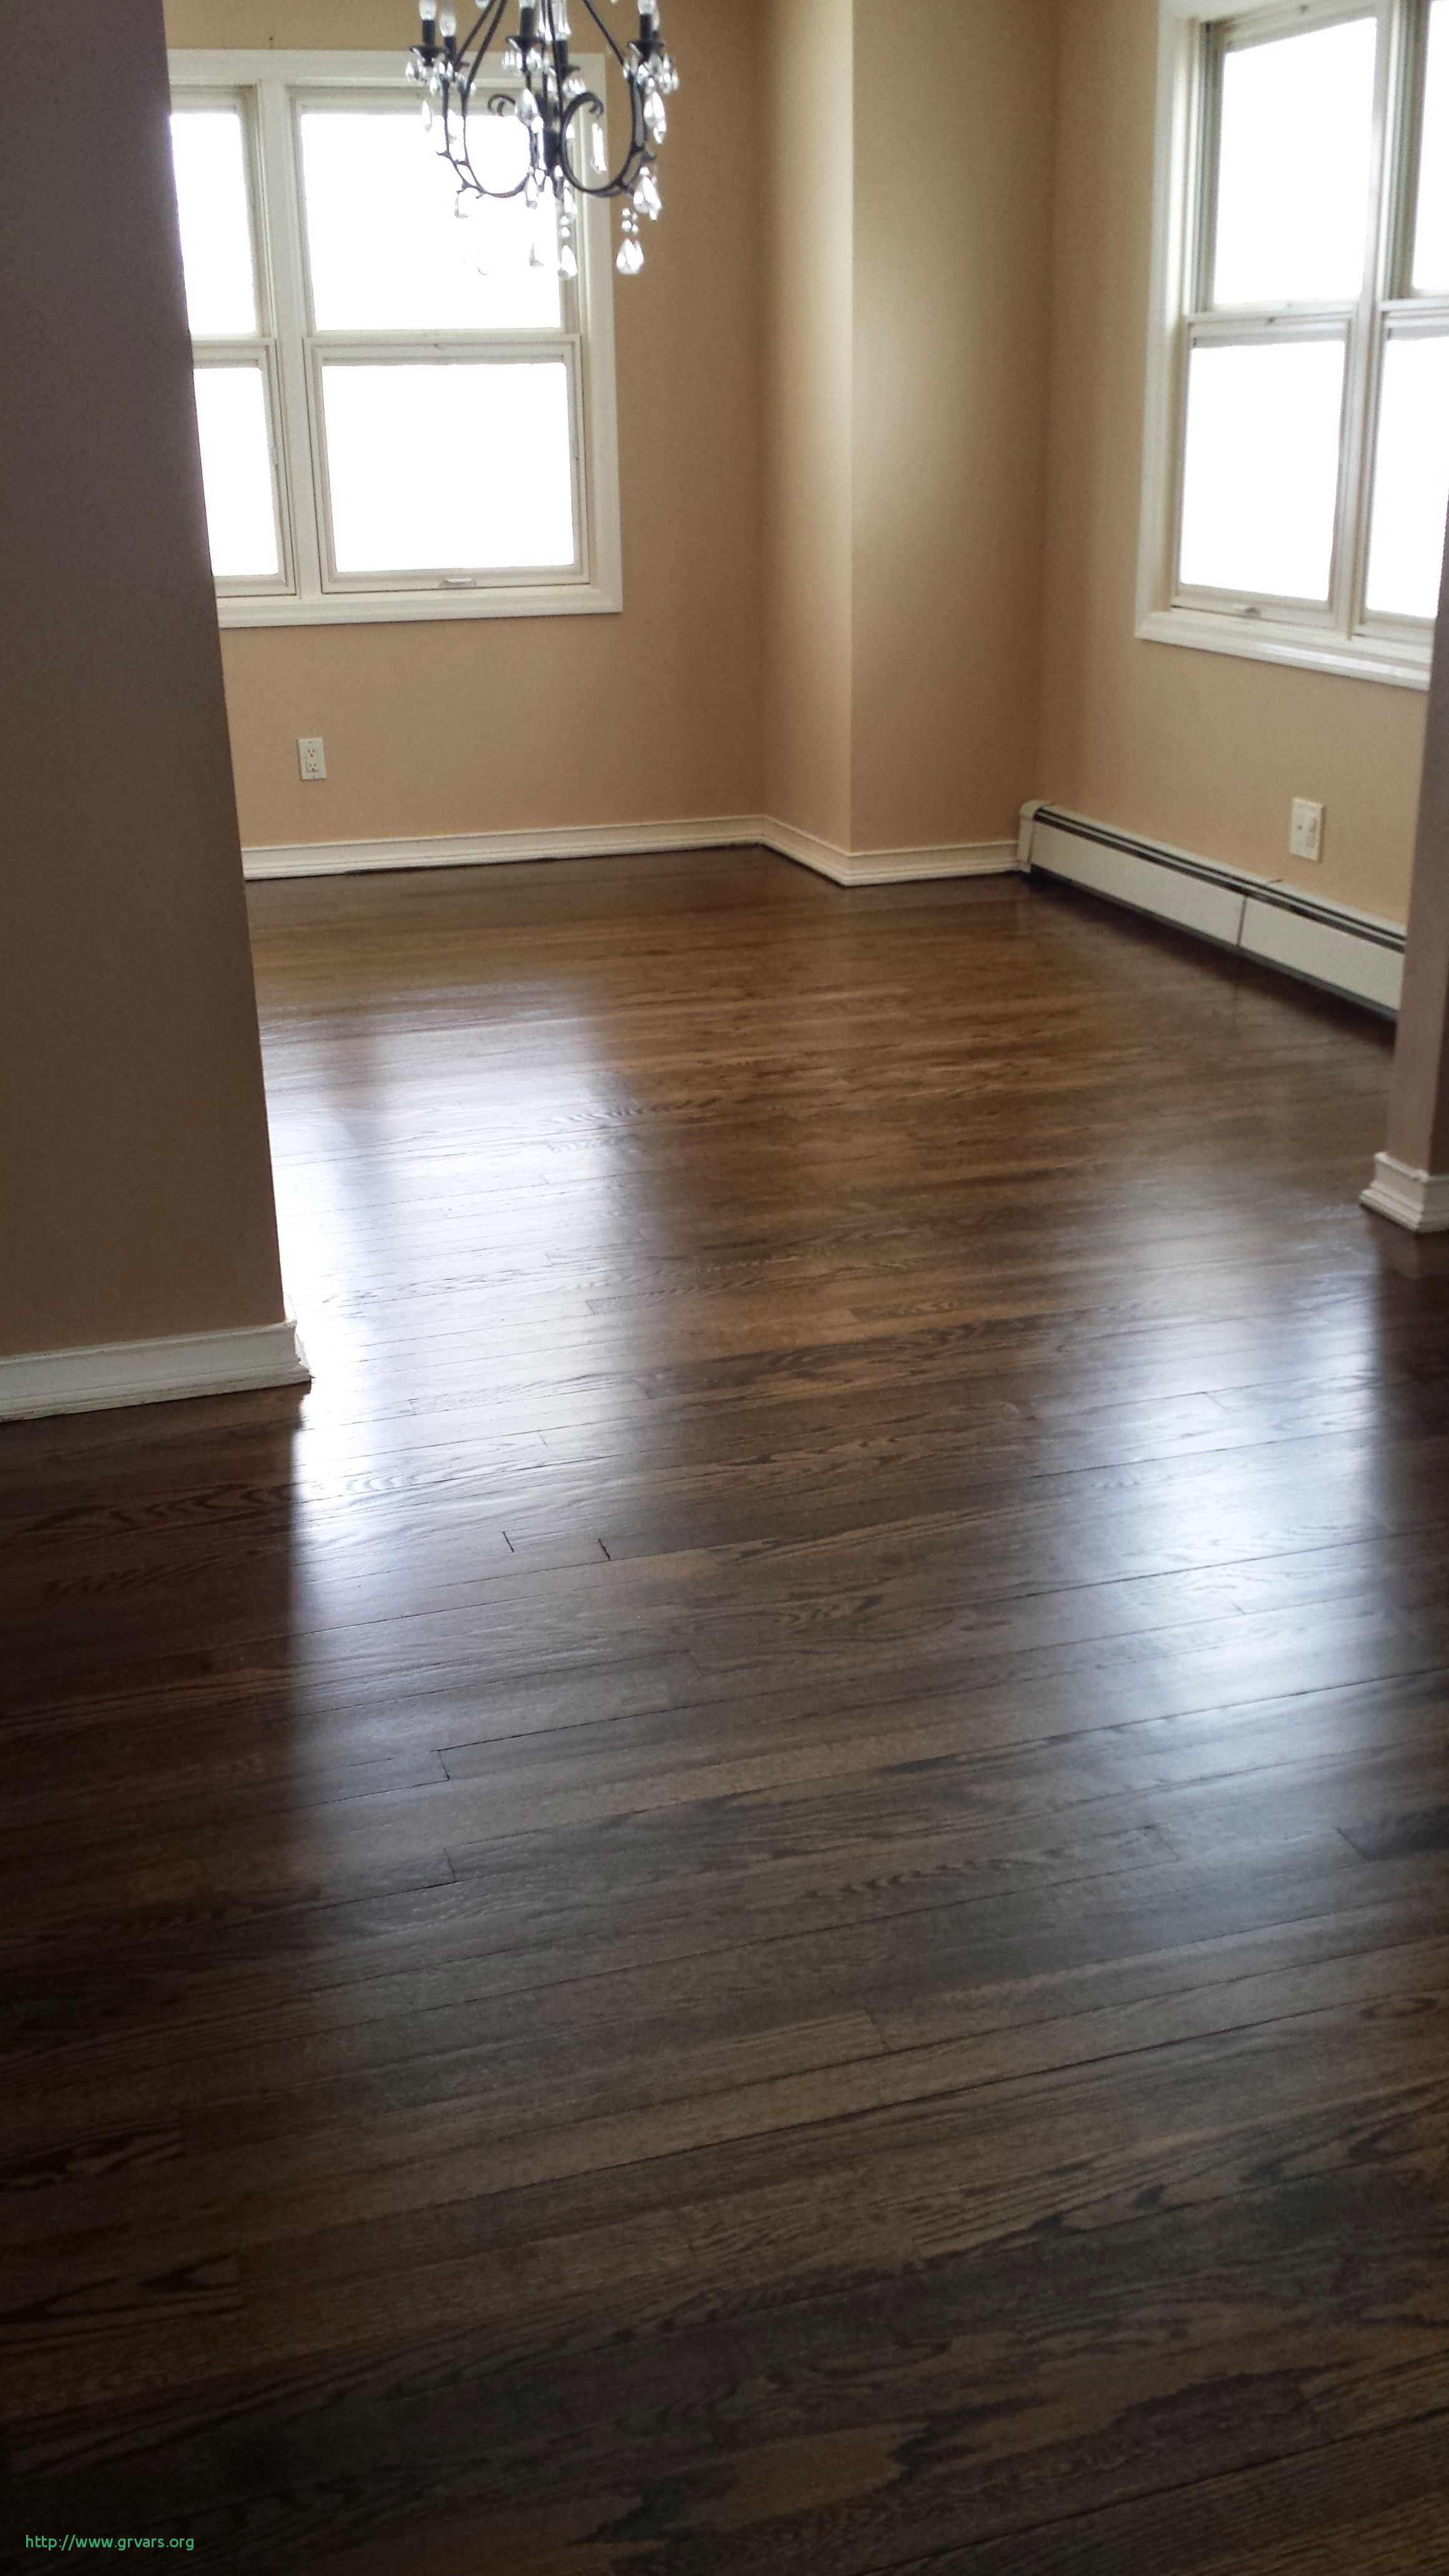 refinished hardwood floors before and after of 20 charmant how to refinish hardwood floors cheap ideas blog intended for 20 photos of the 20 charmant how to refinish hardwood floors cheap